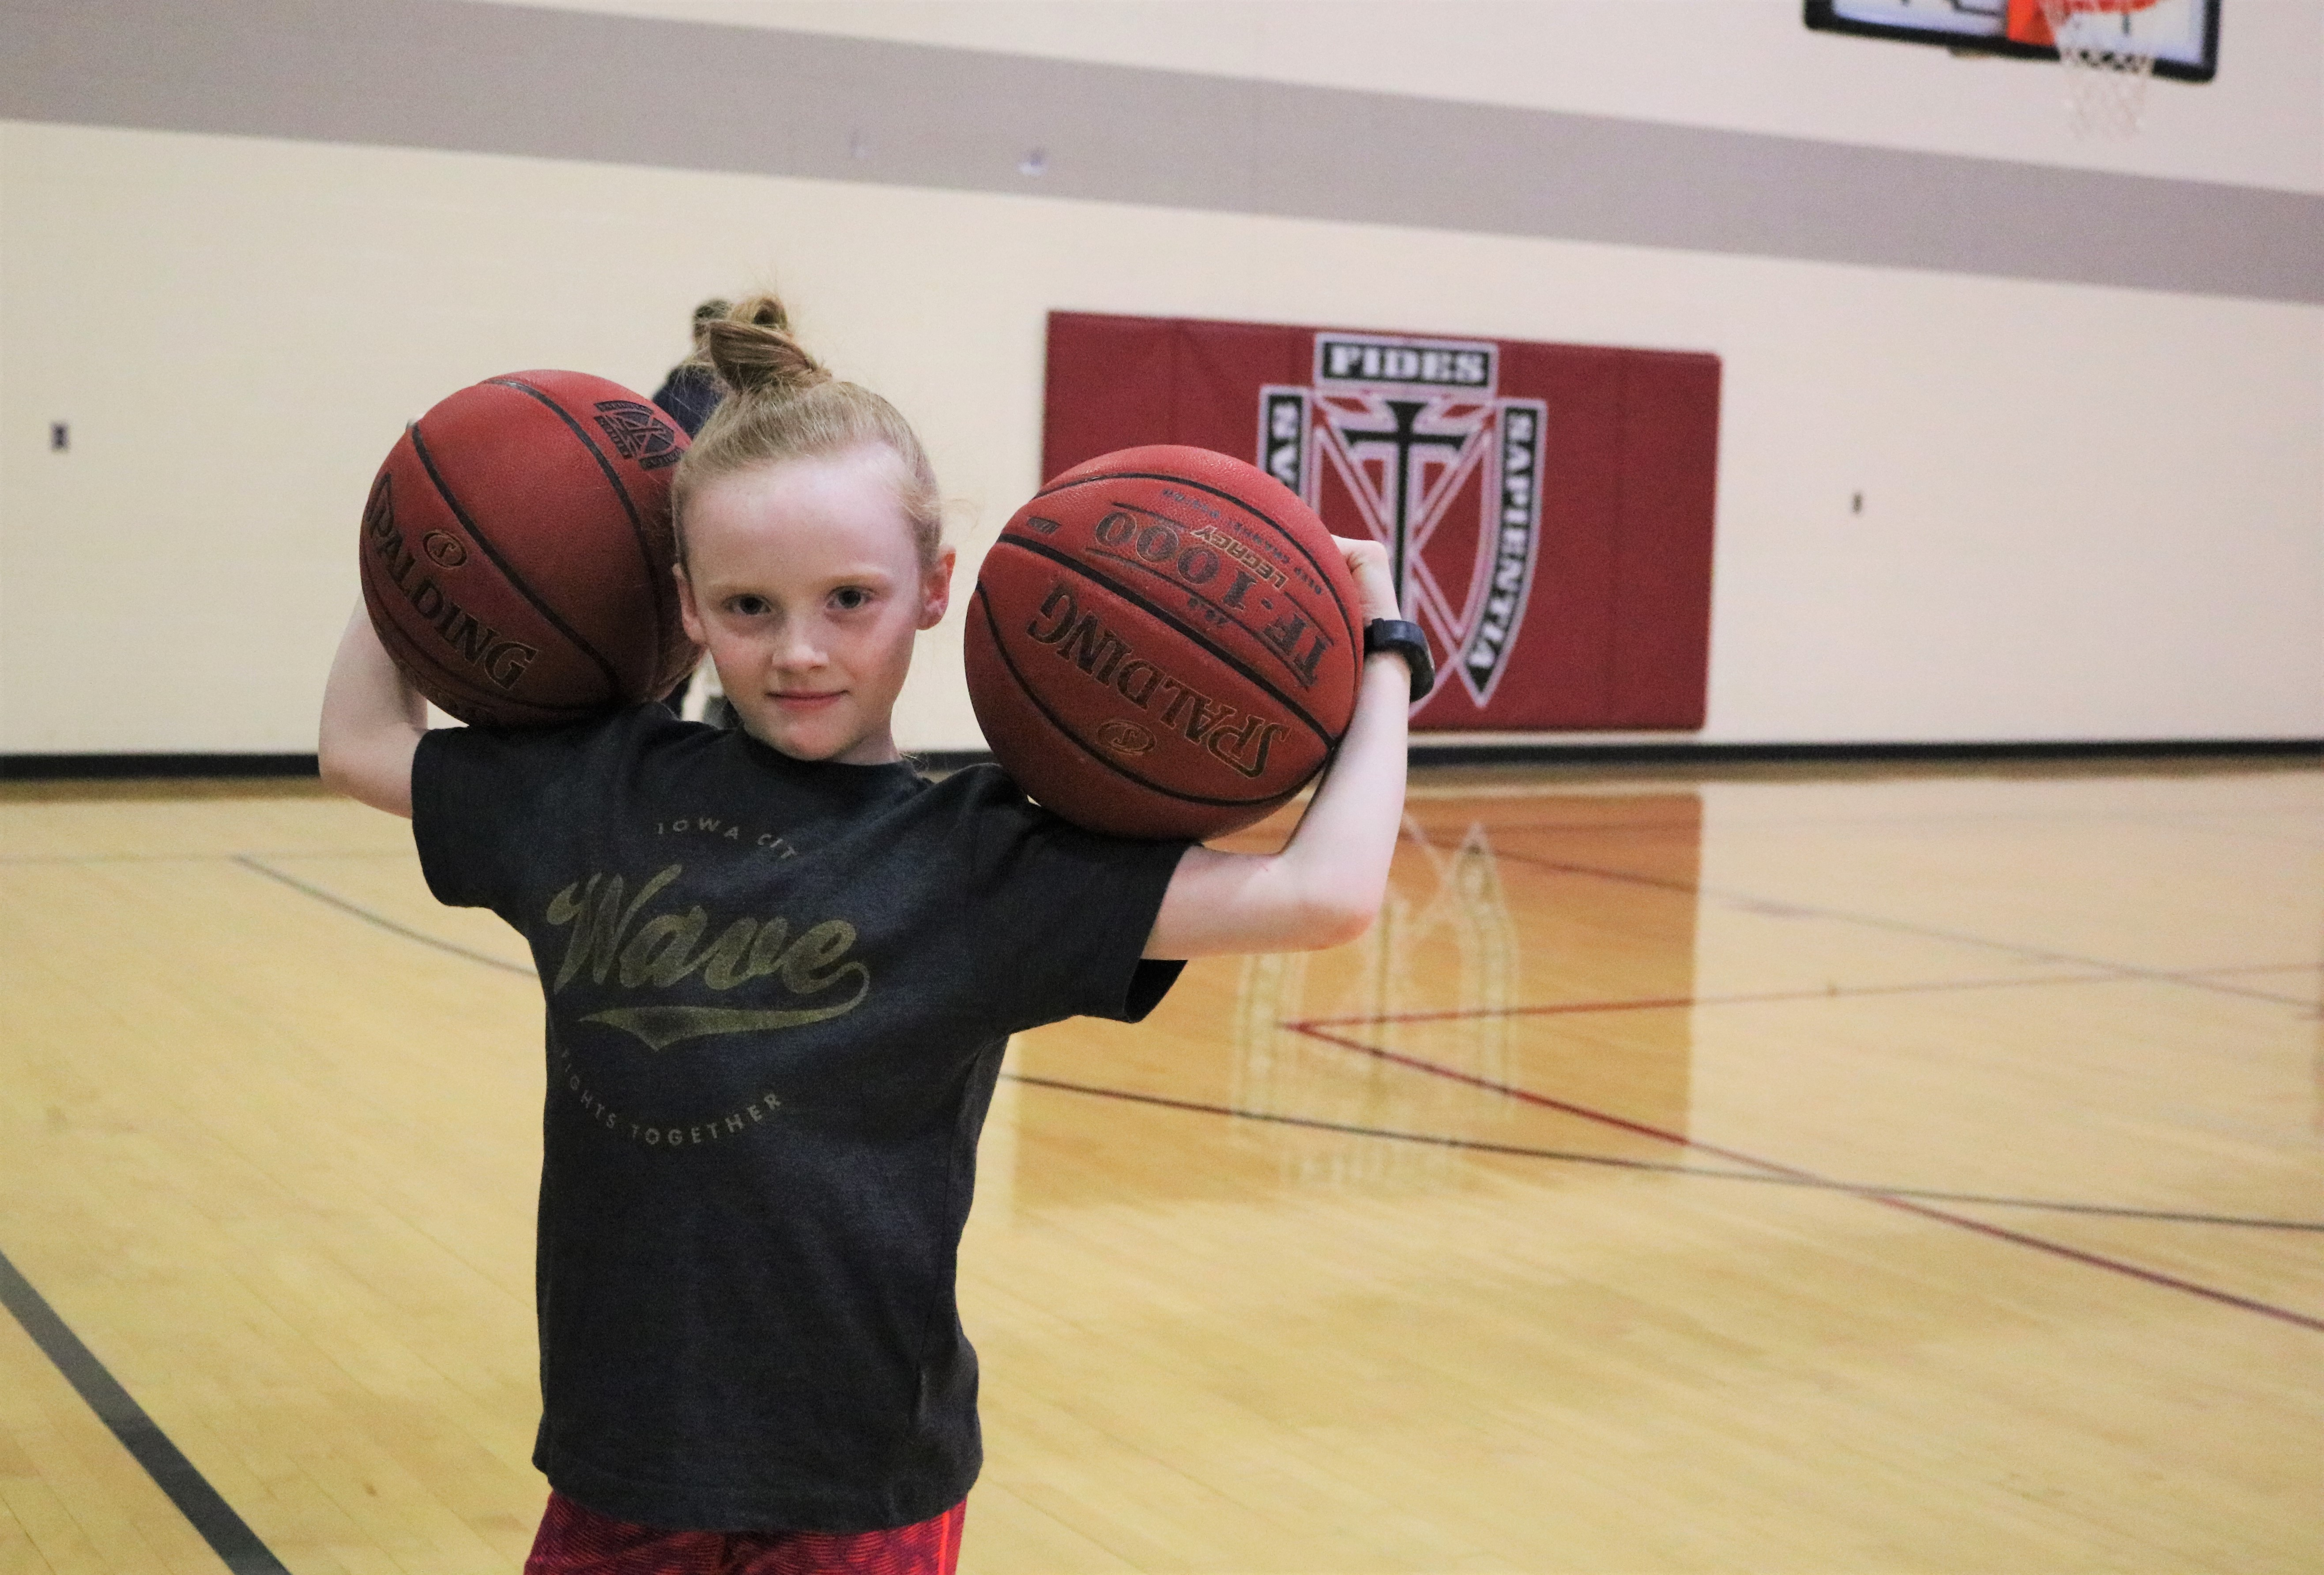 Dowling Basketball Clinic